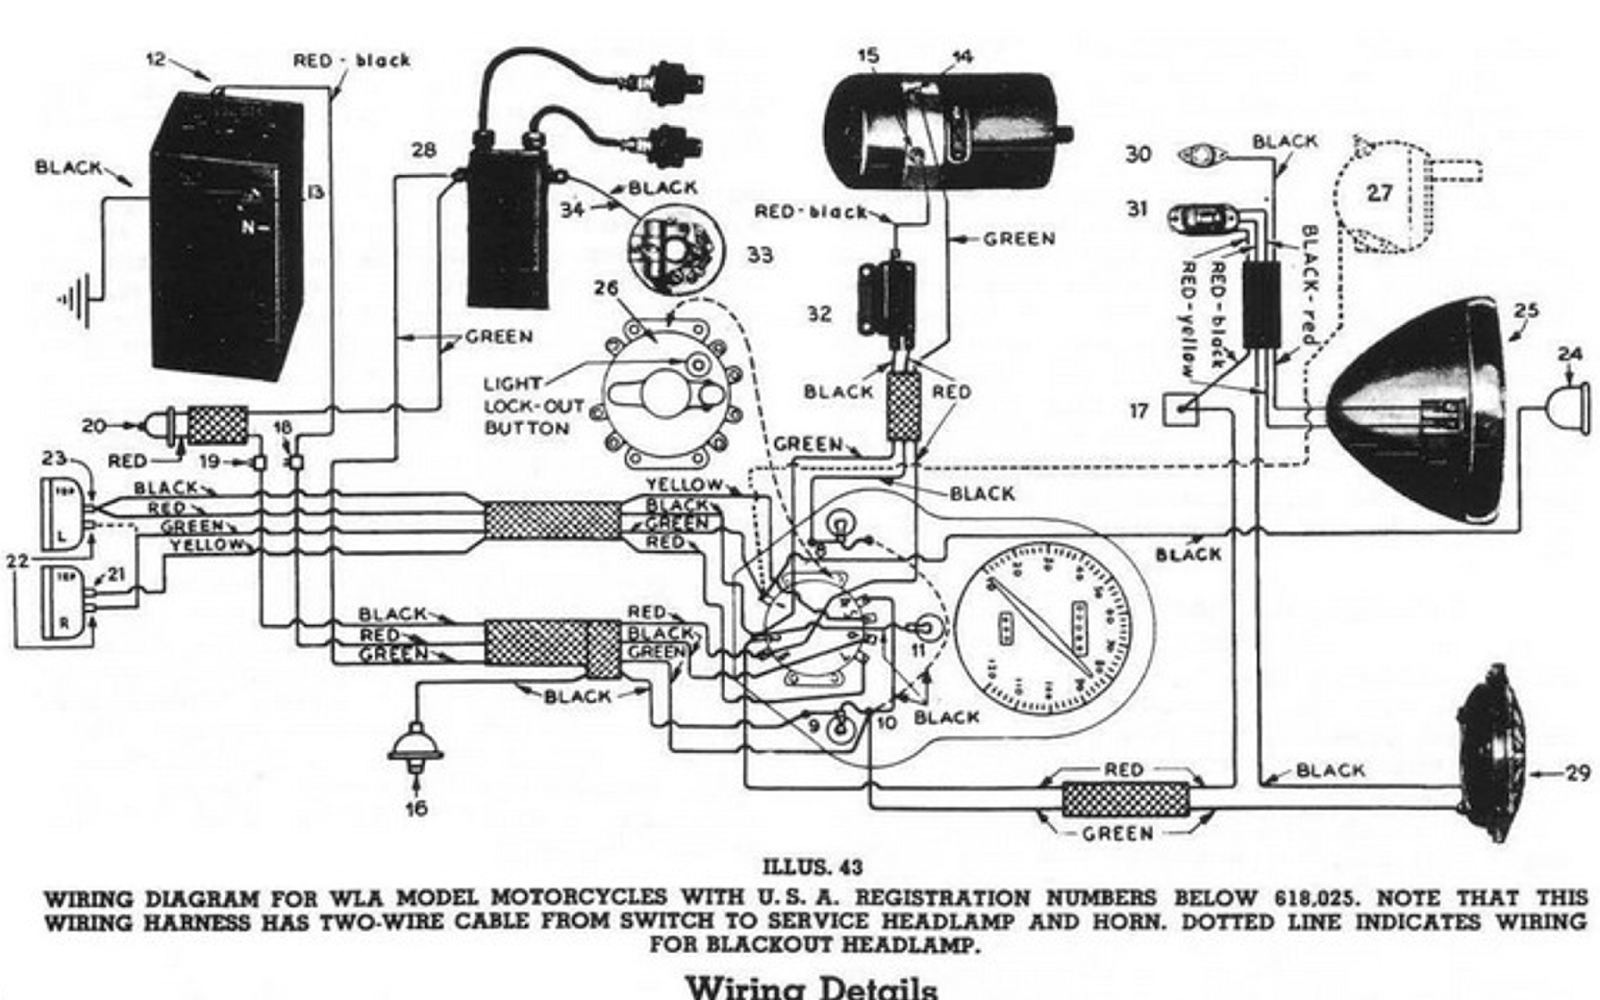 Wiring Diagram Panel Wlc : Harley davidson wl restoration re wiring the